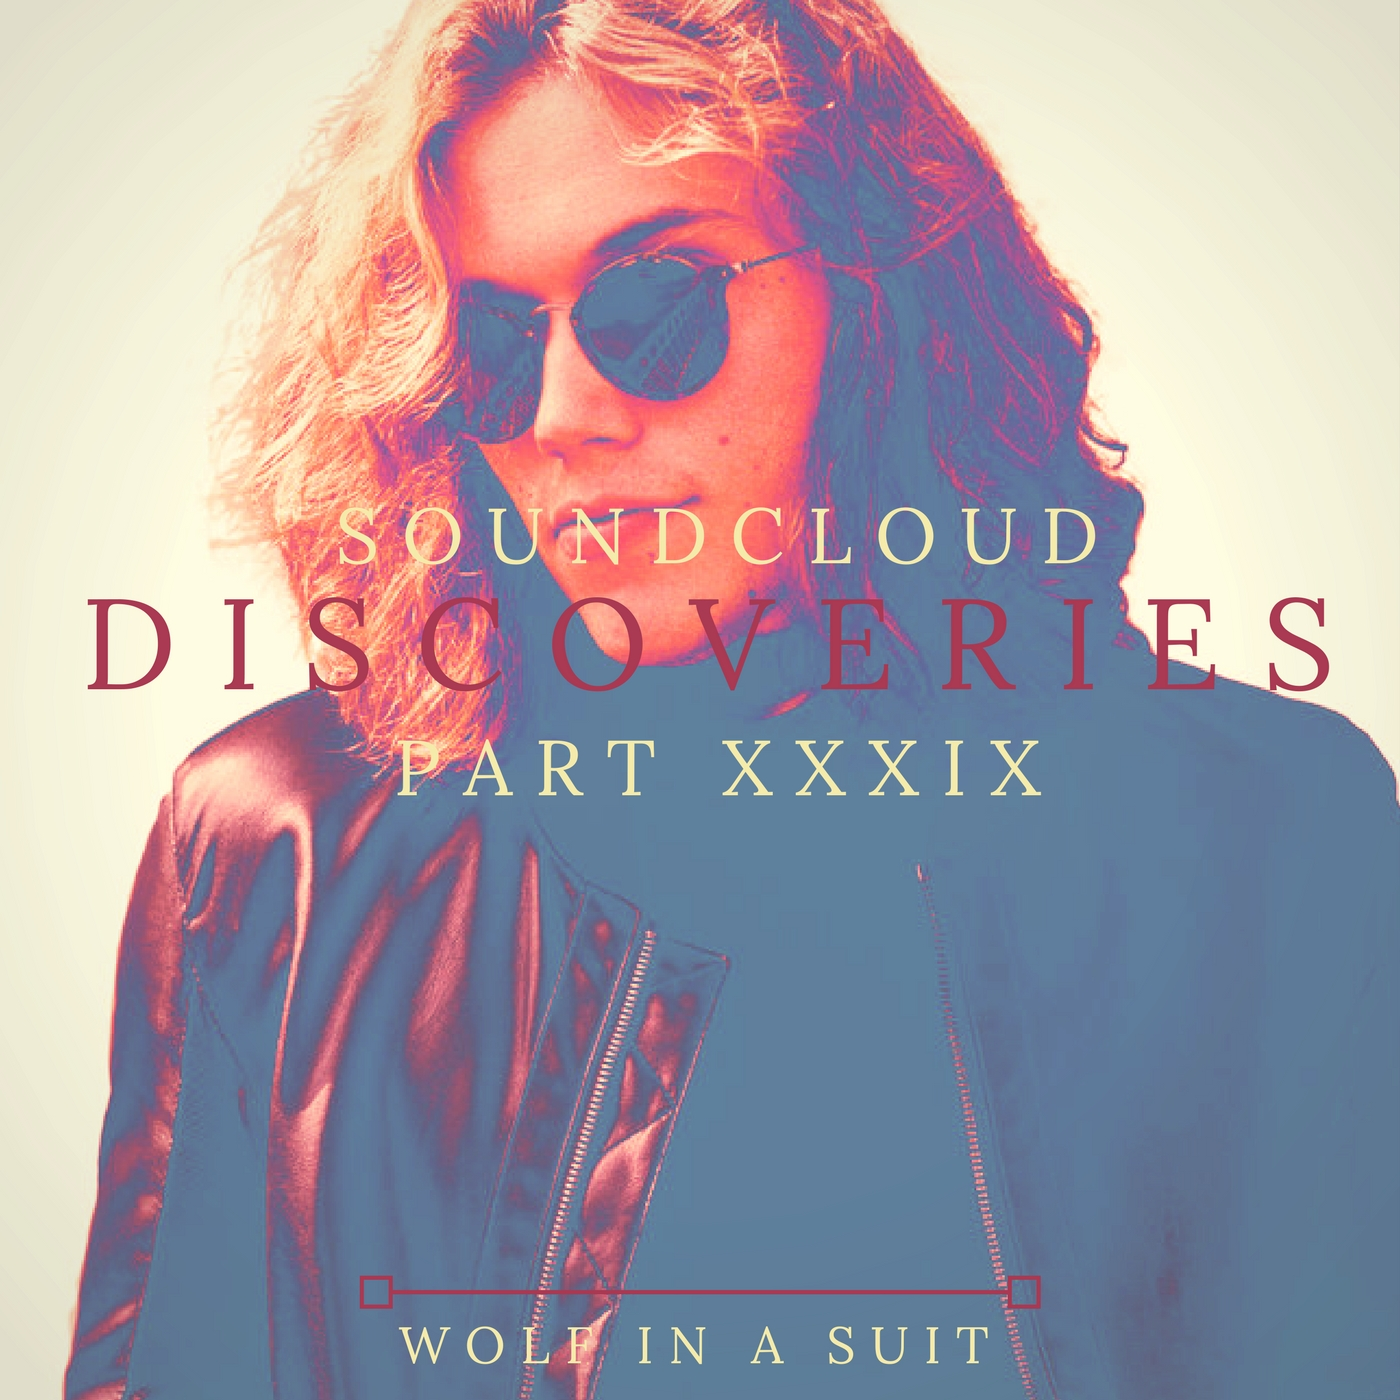 playlist-soundcloud discoveries part xxxix-indie music-indie pop-indie rock-indie folk-remix-new music-music blog-indie blog-wolfinasuit-wolf in a suit